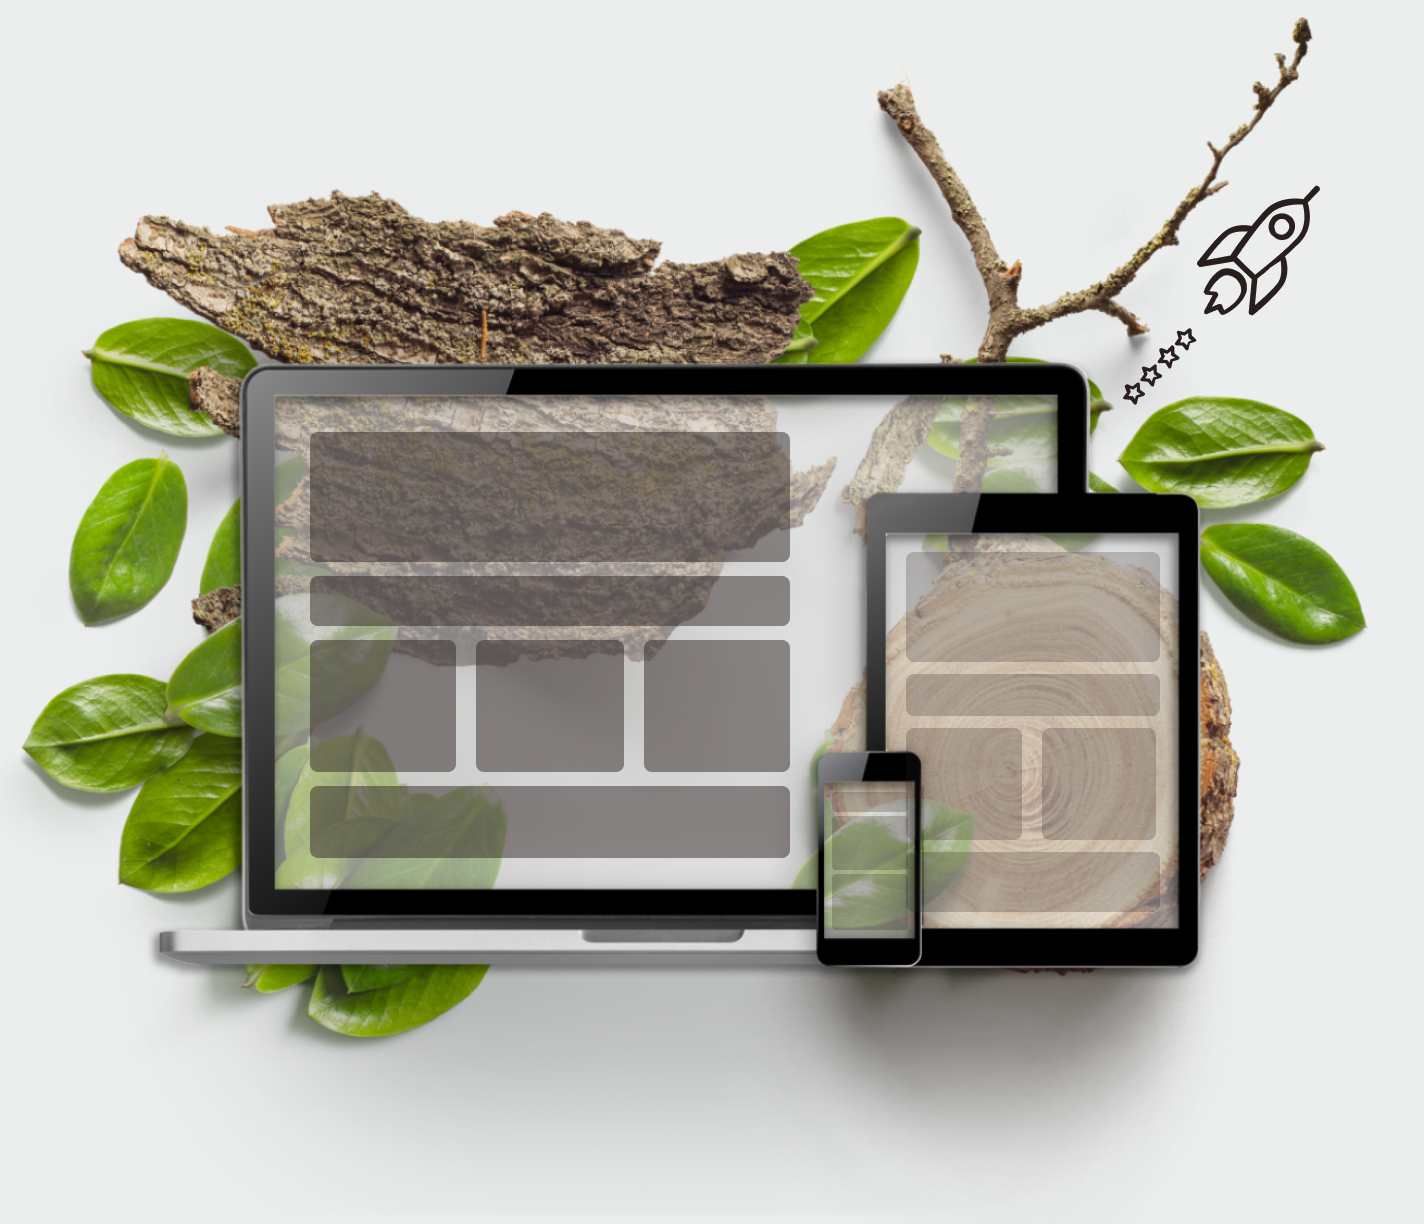 Technology screens and greenery